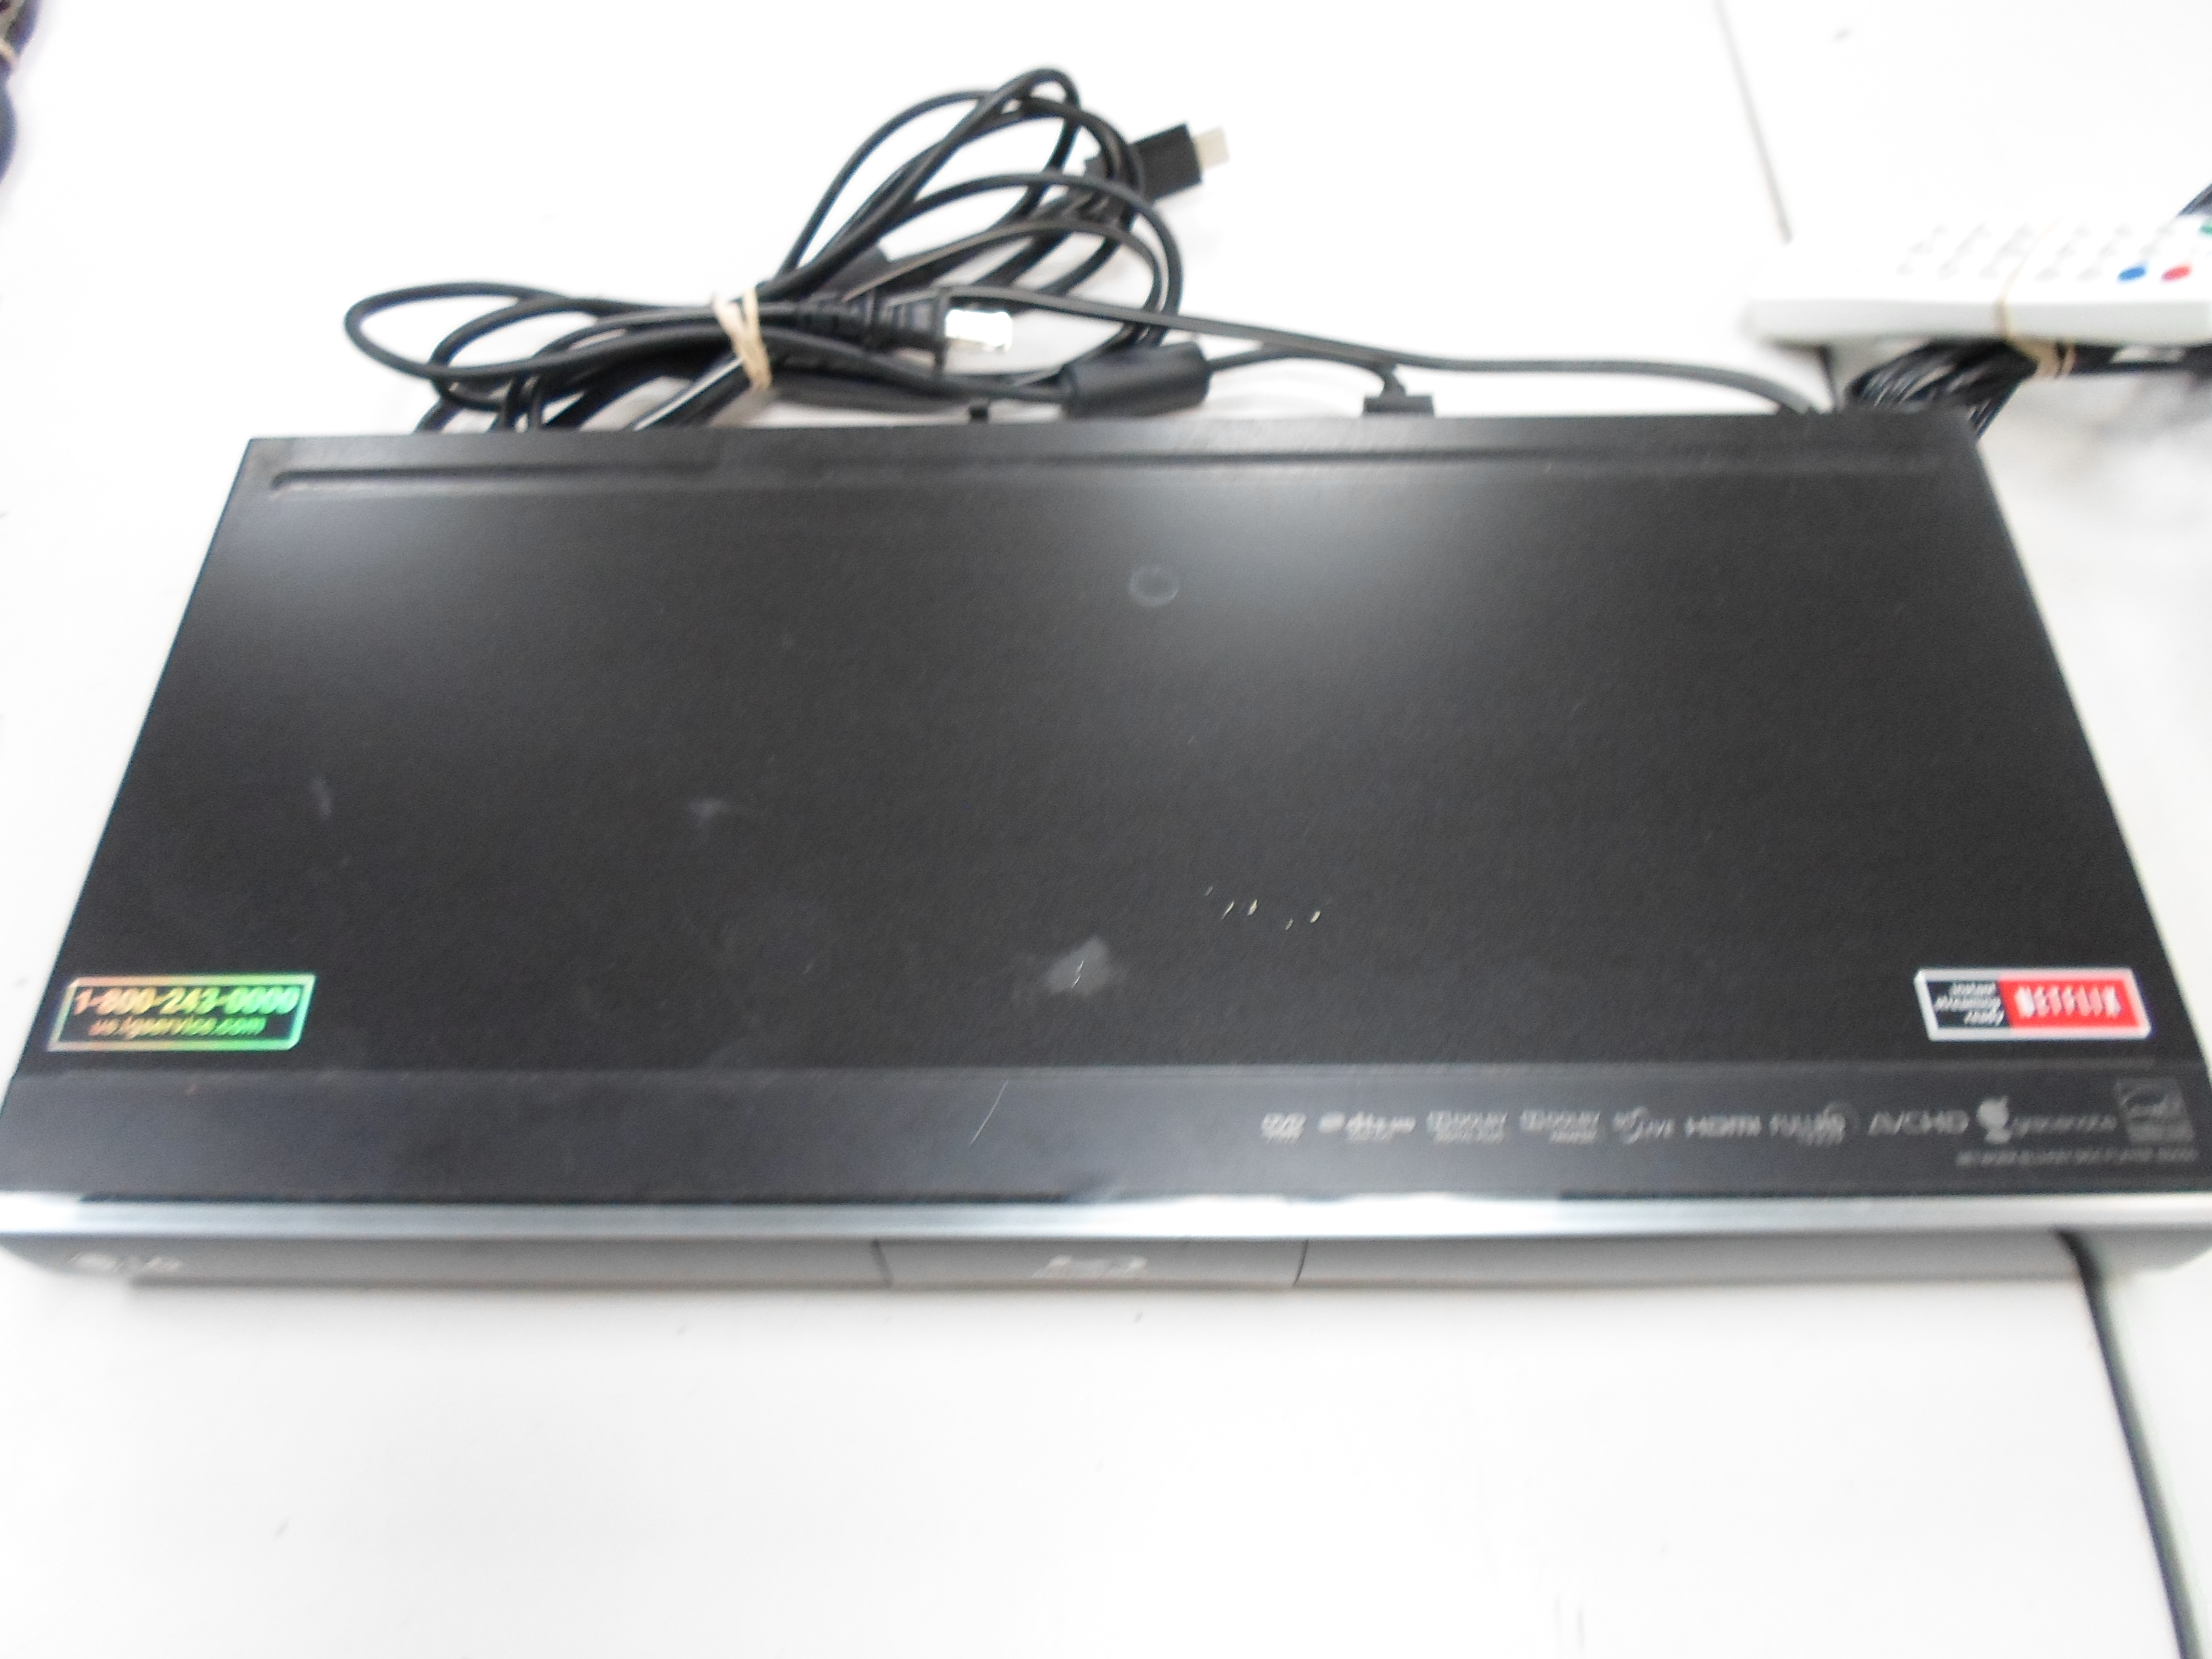 LG BLU RAY DVD PLAYER WITH WIFI CONNECTION AND REMOTE - BD550